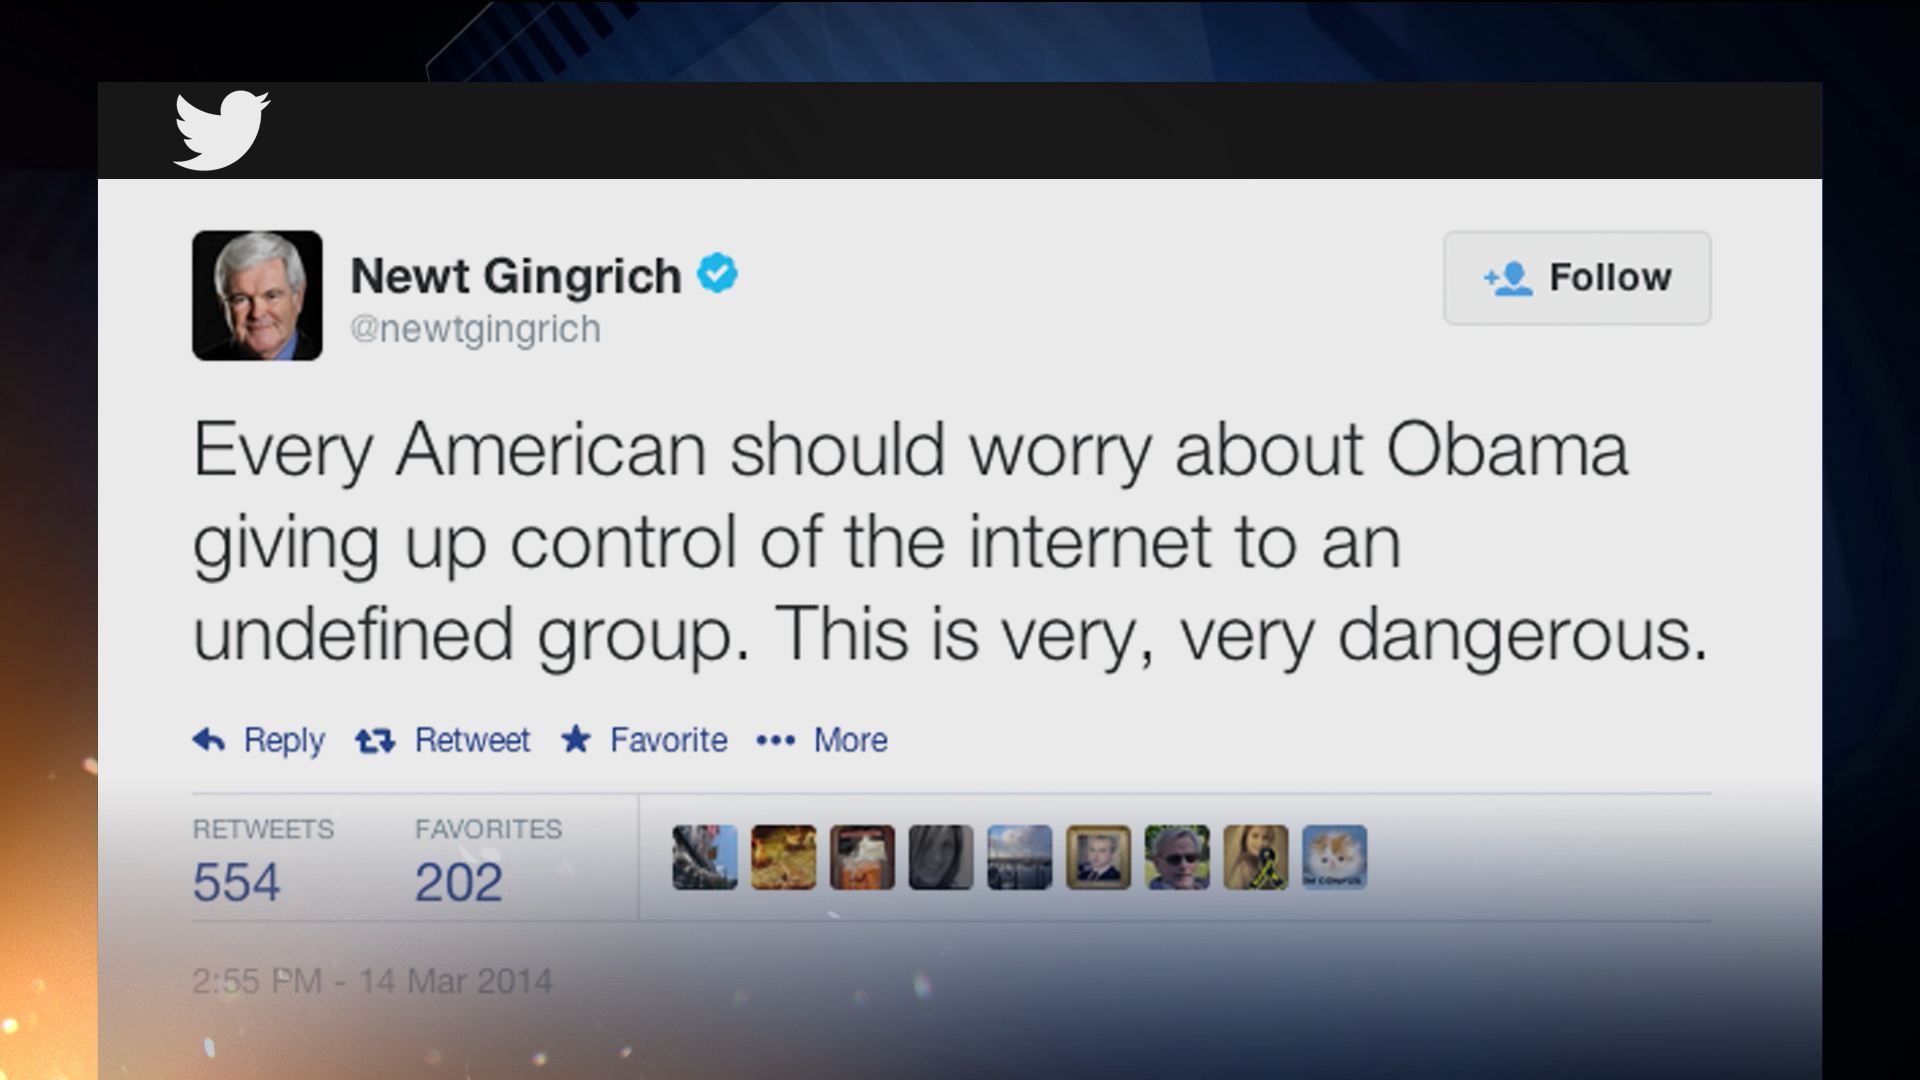 Gingrich's out of this world conspiracy